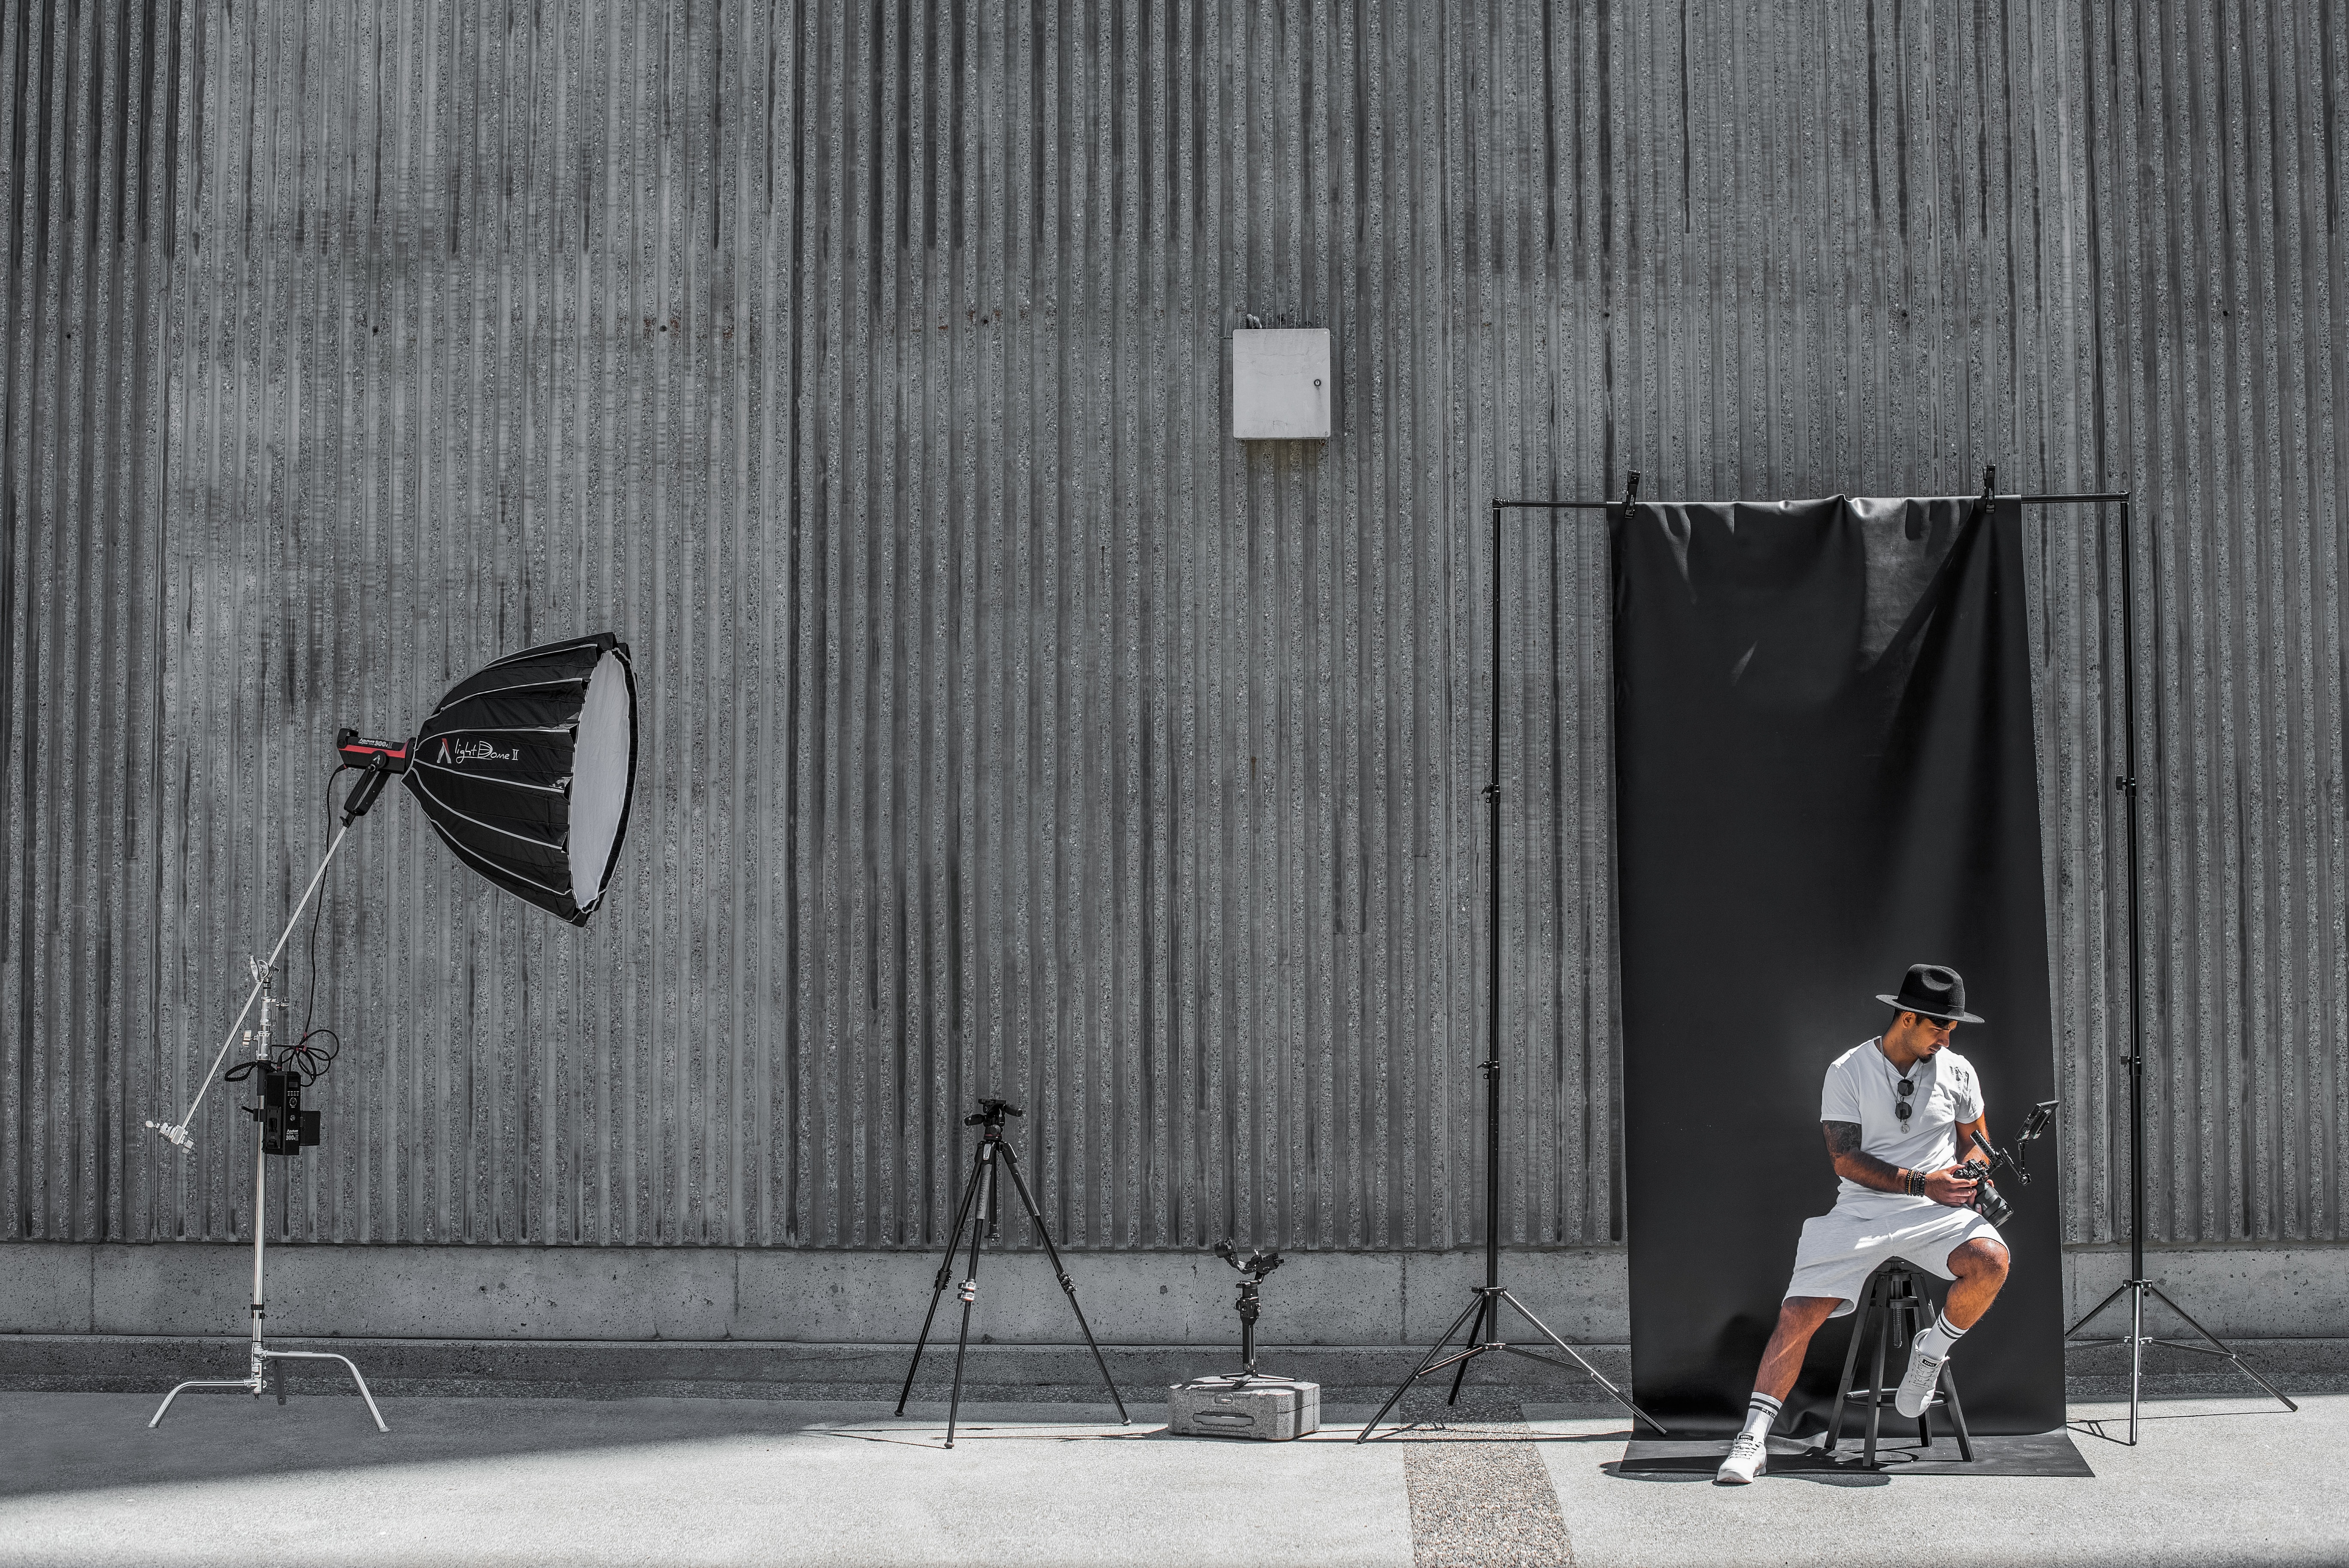 A professional male model on a shoot against a metal wall